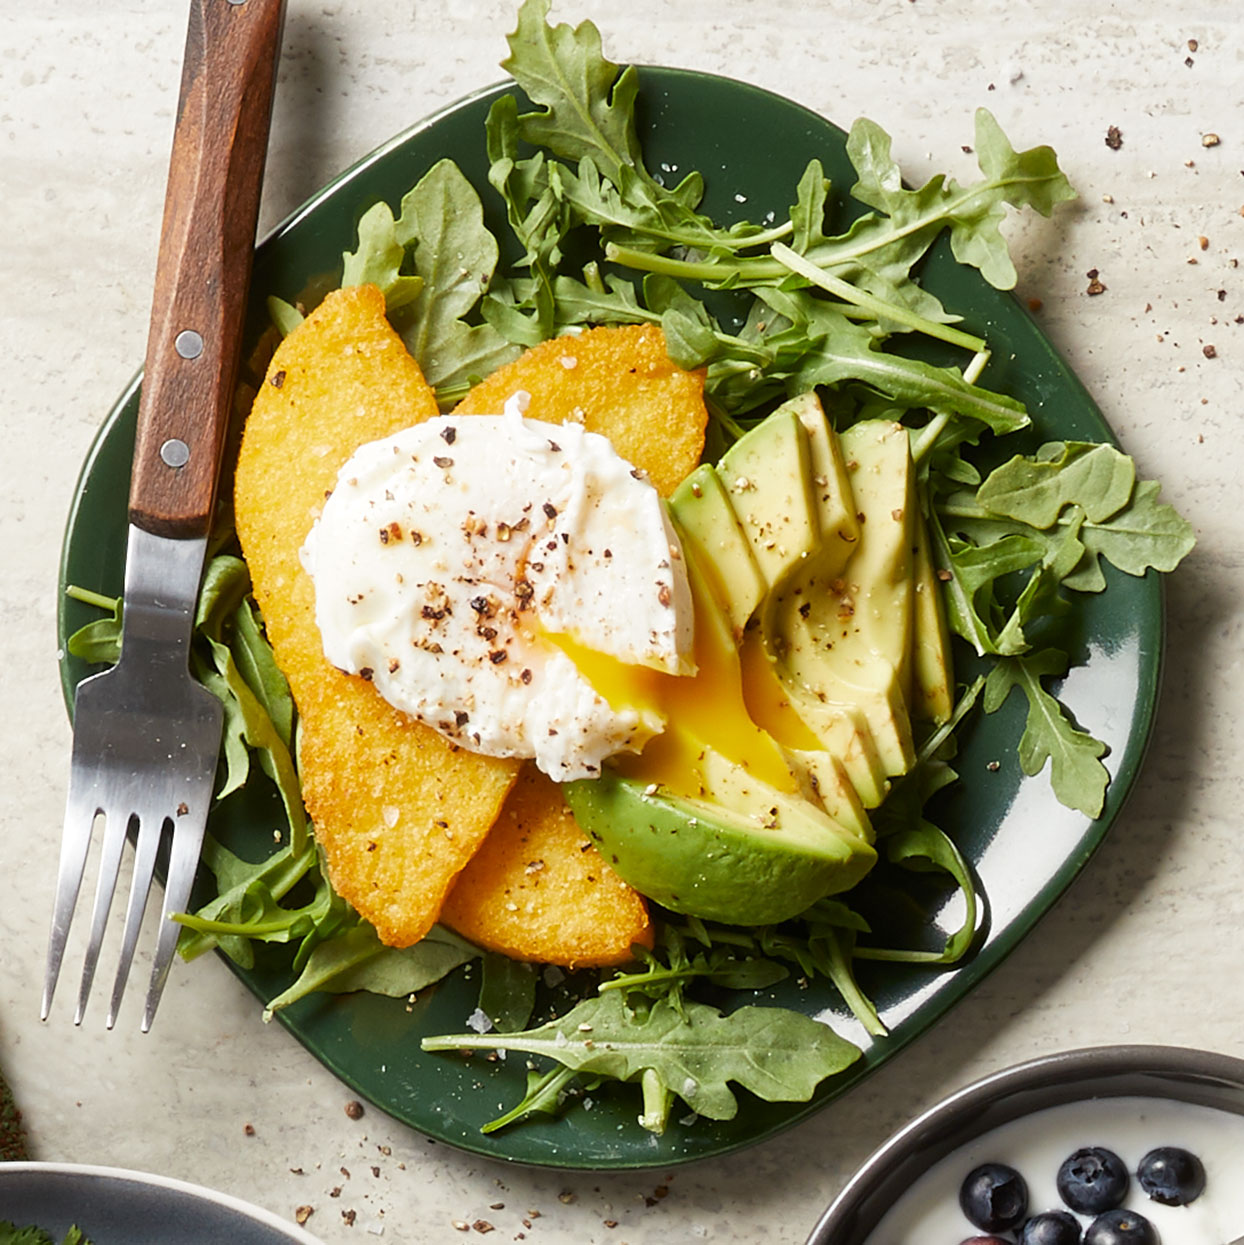 Precooked polenta makes this savory healthy breakfast a breeze. Serving the easy poached eggs on a bed of arugula is a wonderful way to get a head start on your daily vegetable intake.